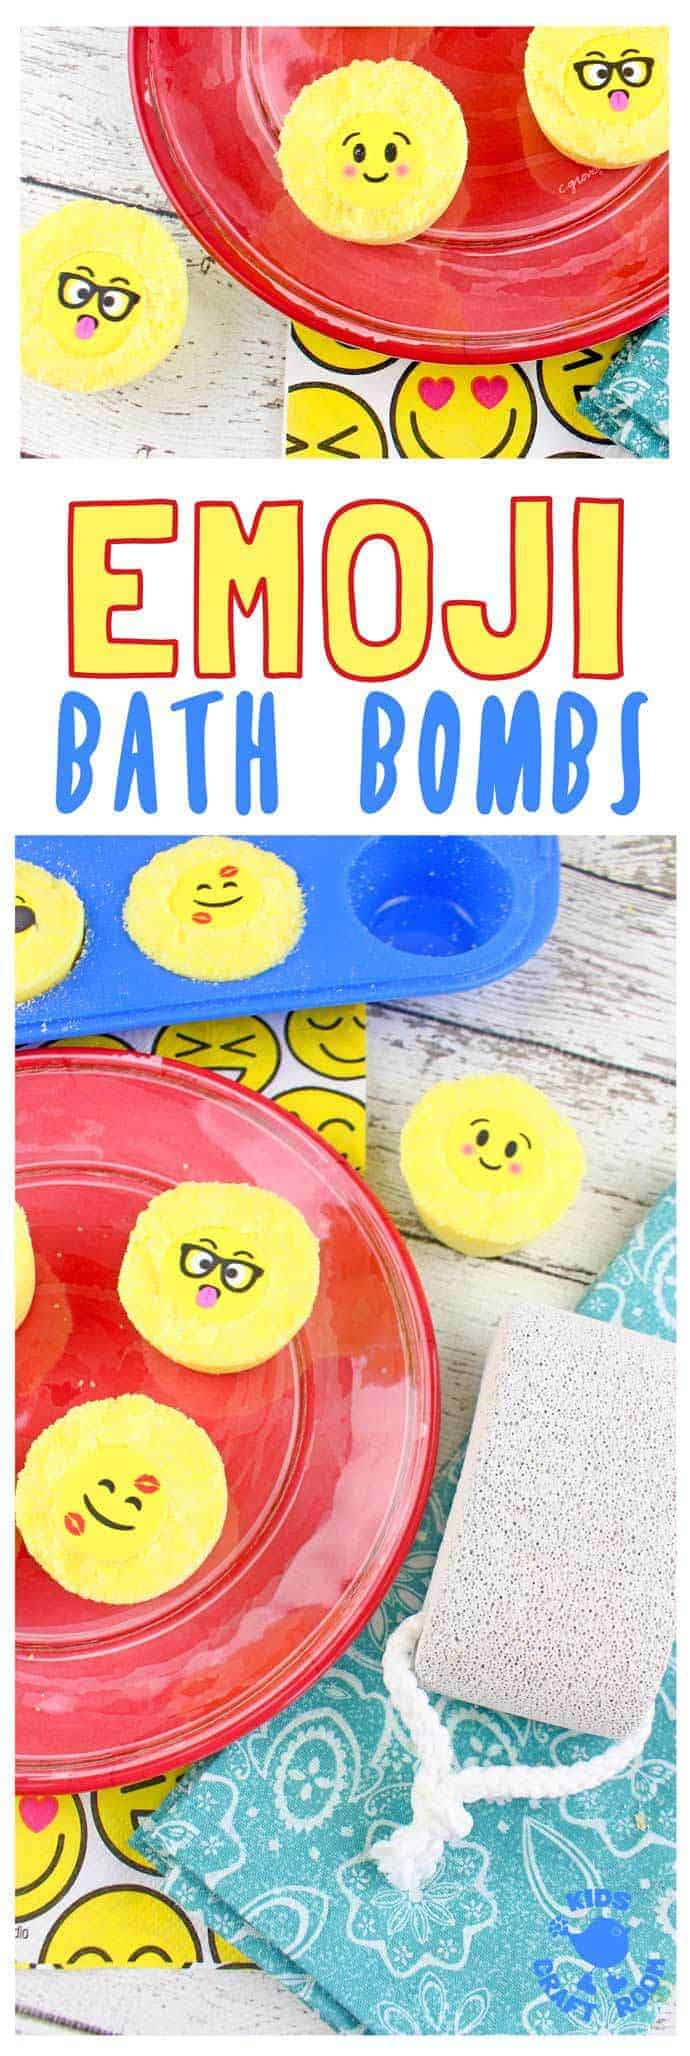 Emoji Bath Bombs make bath time fun! Homemade bath bombs are easy to make and bring a smile and a giggle to bath time. They're great as homemade gifts for kids to make too! #emoji #bathbombs #kidscrafts #homemadegifts #bathtime #kidsactivities #soap #homemadesoap #craftsforkids #kidscraftroom #diybathbombs